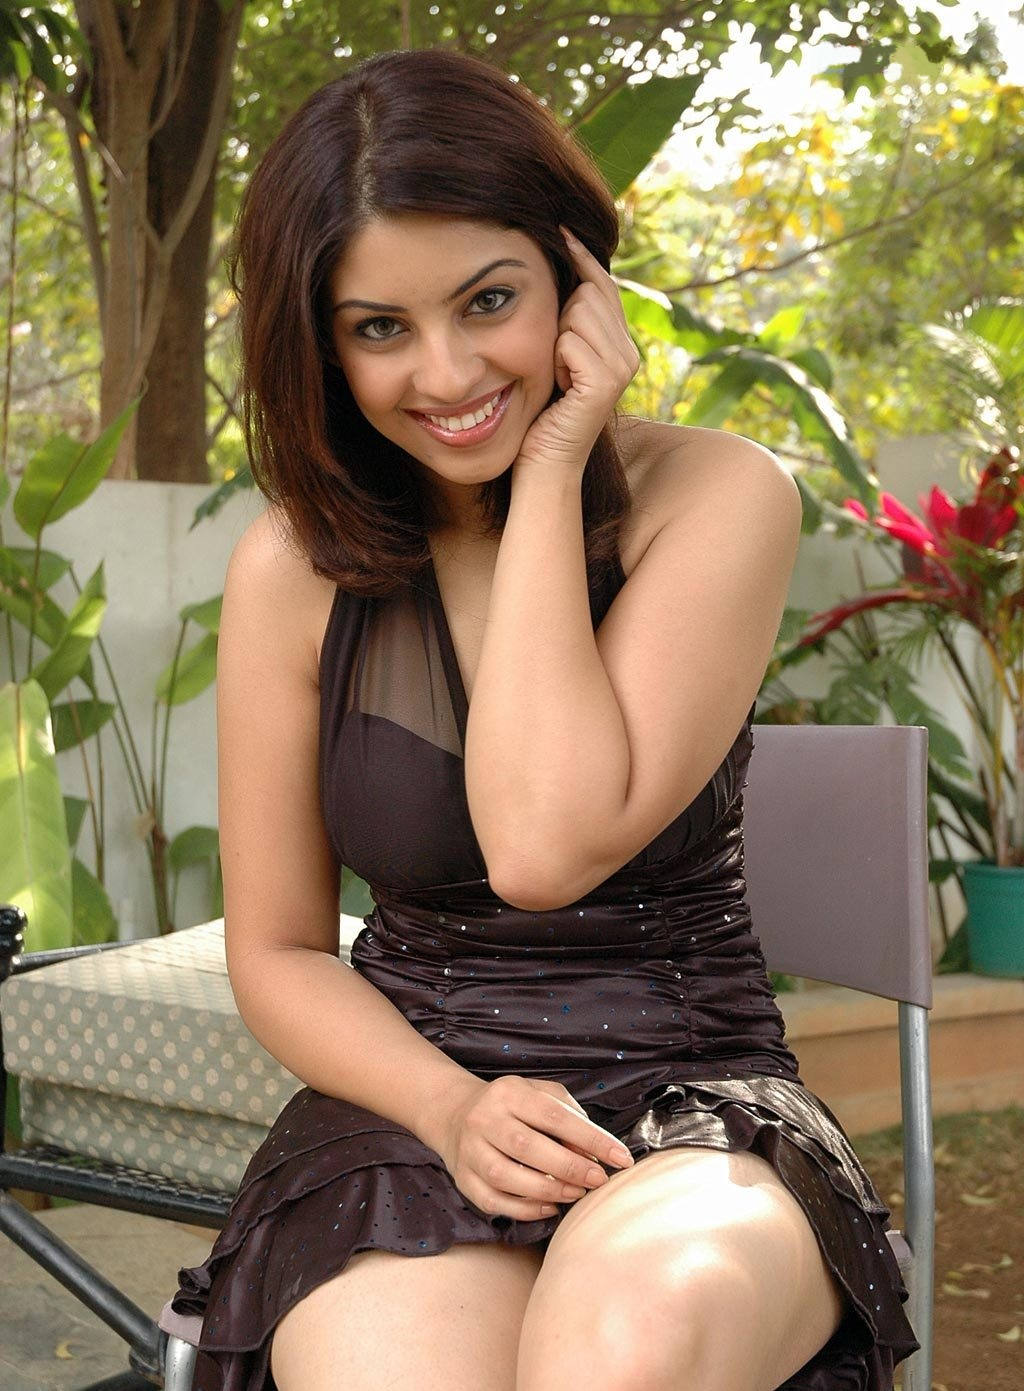 Richa Gangopadhyay Showcasing Her Milky Thighs And Cleavage In A Black